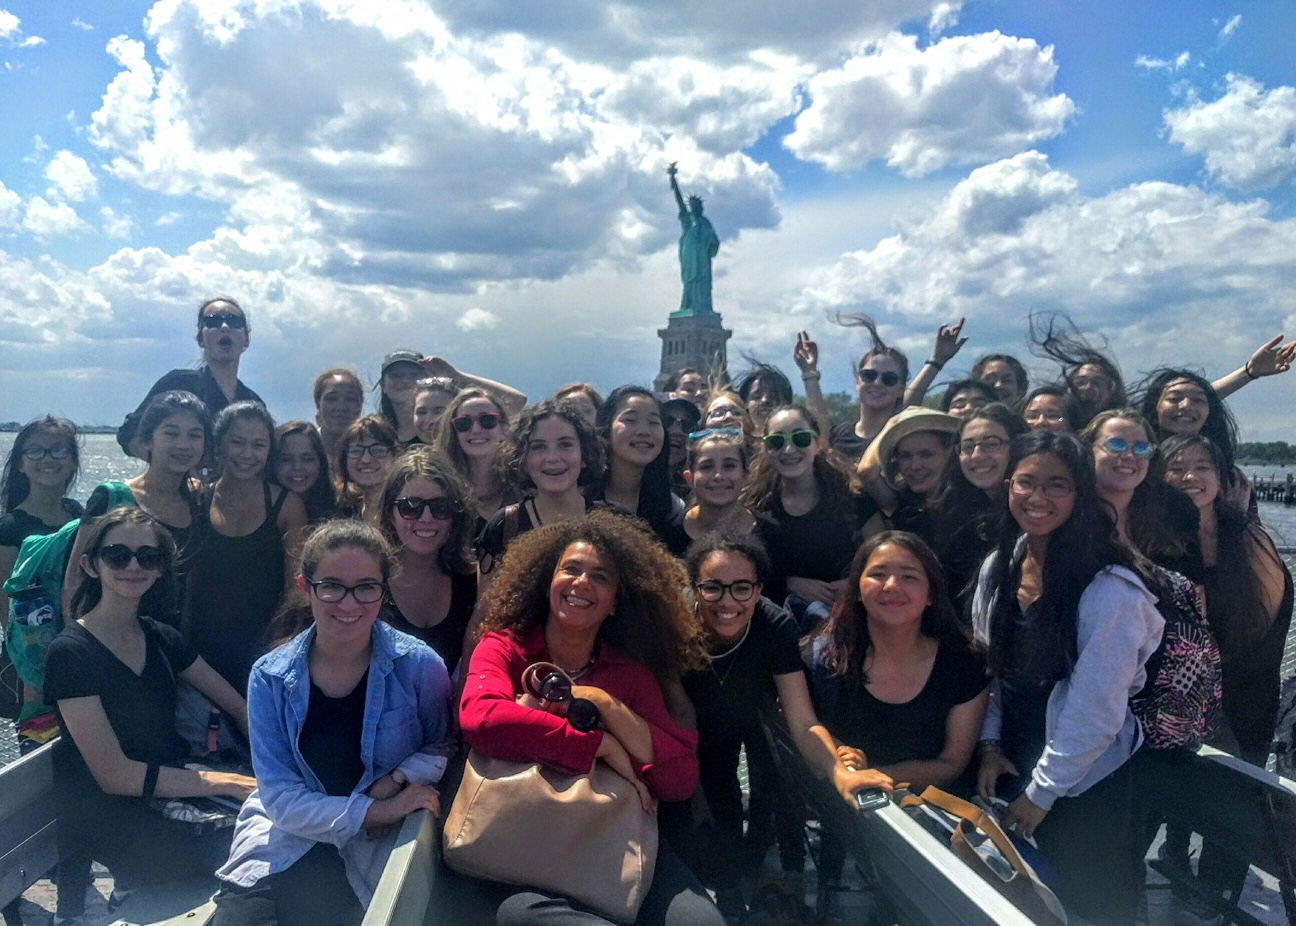 San Francisco Girls Chorus, Valerie Sainte-Agathe touring New York City. Photo by Rachel Clee.